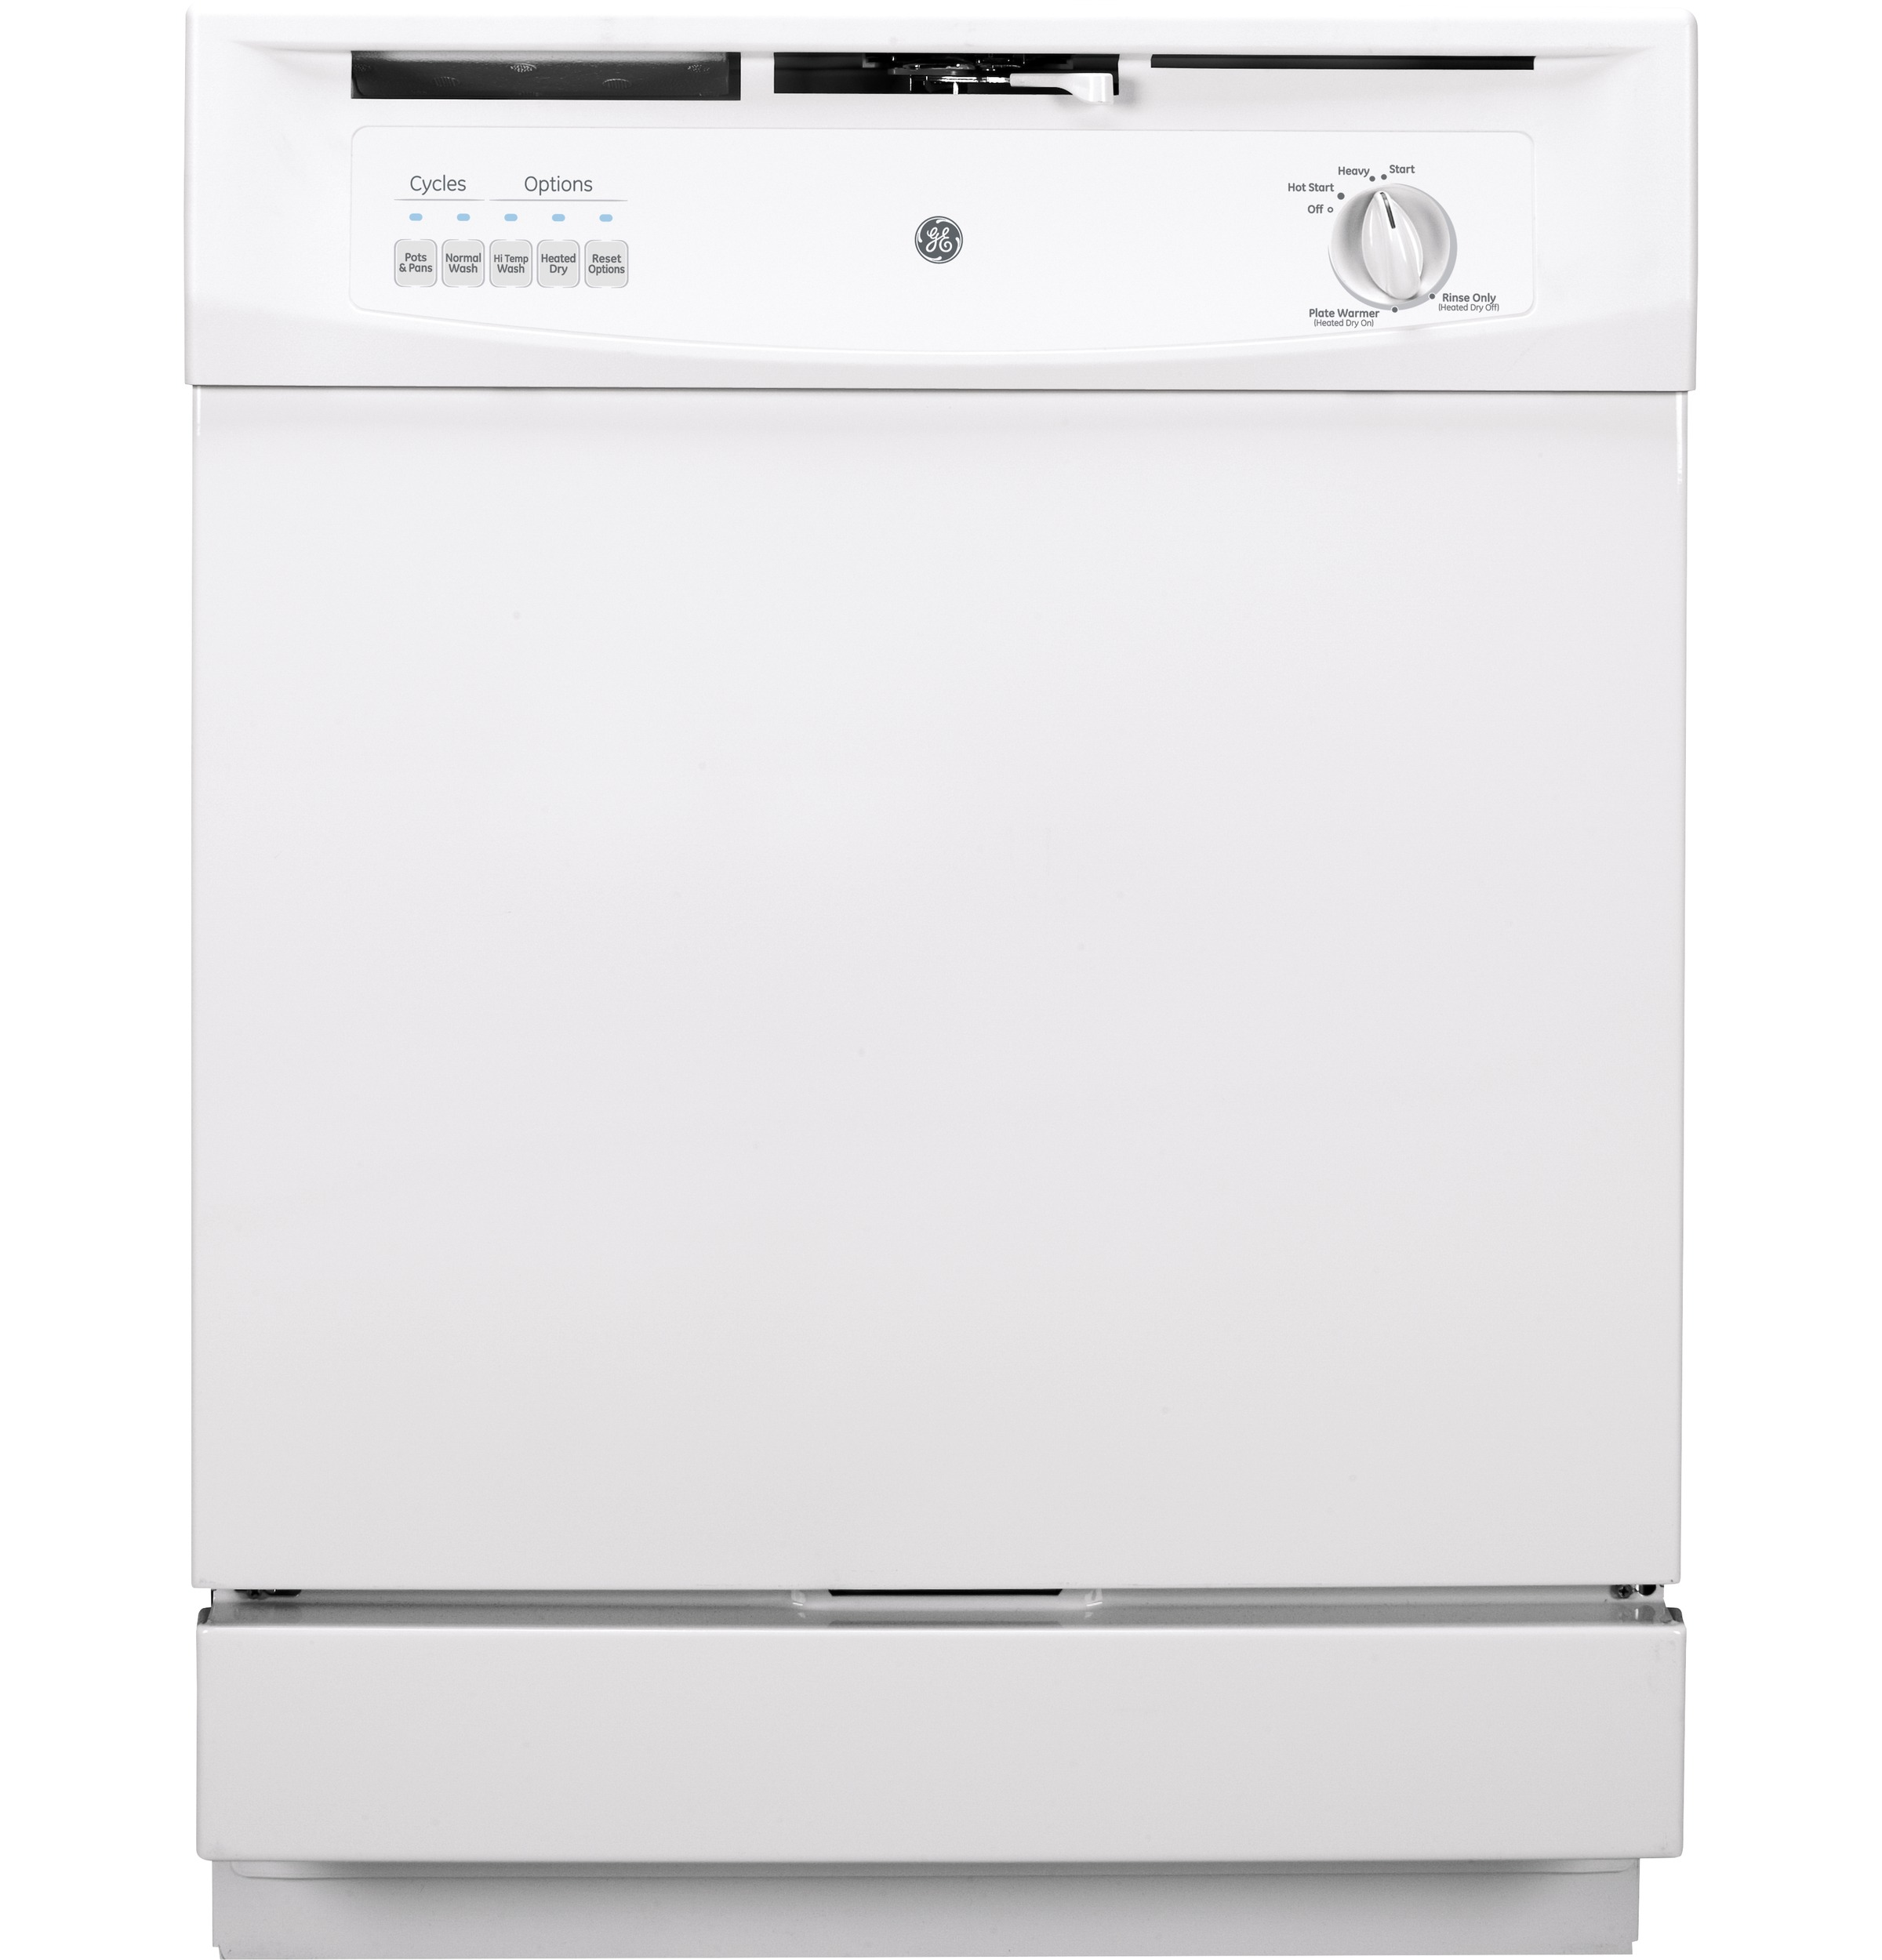 White Dishwasher Image